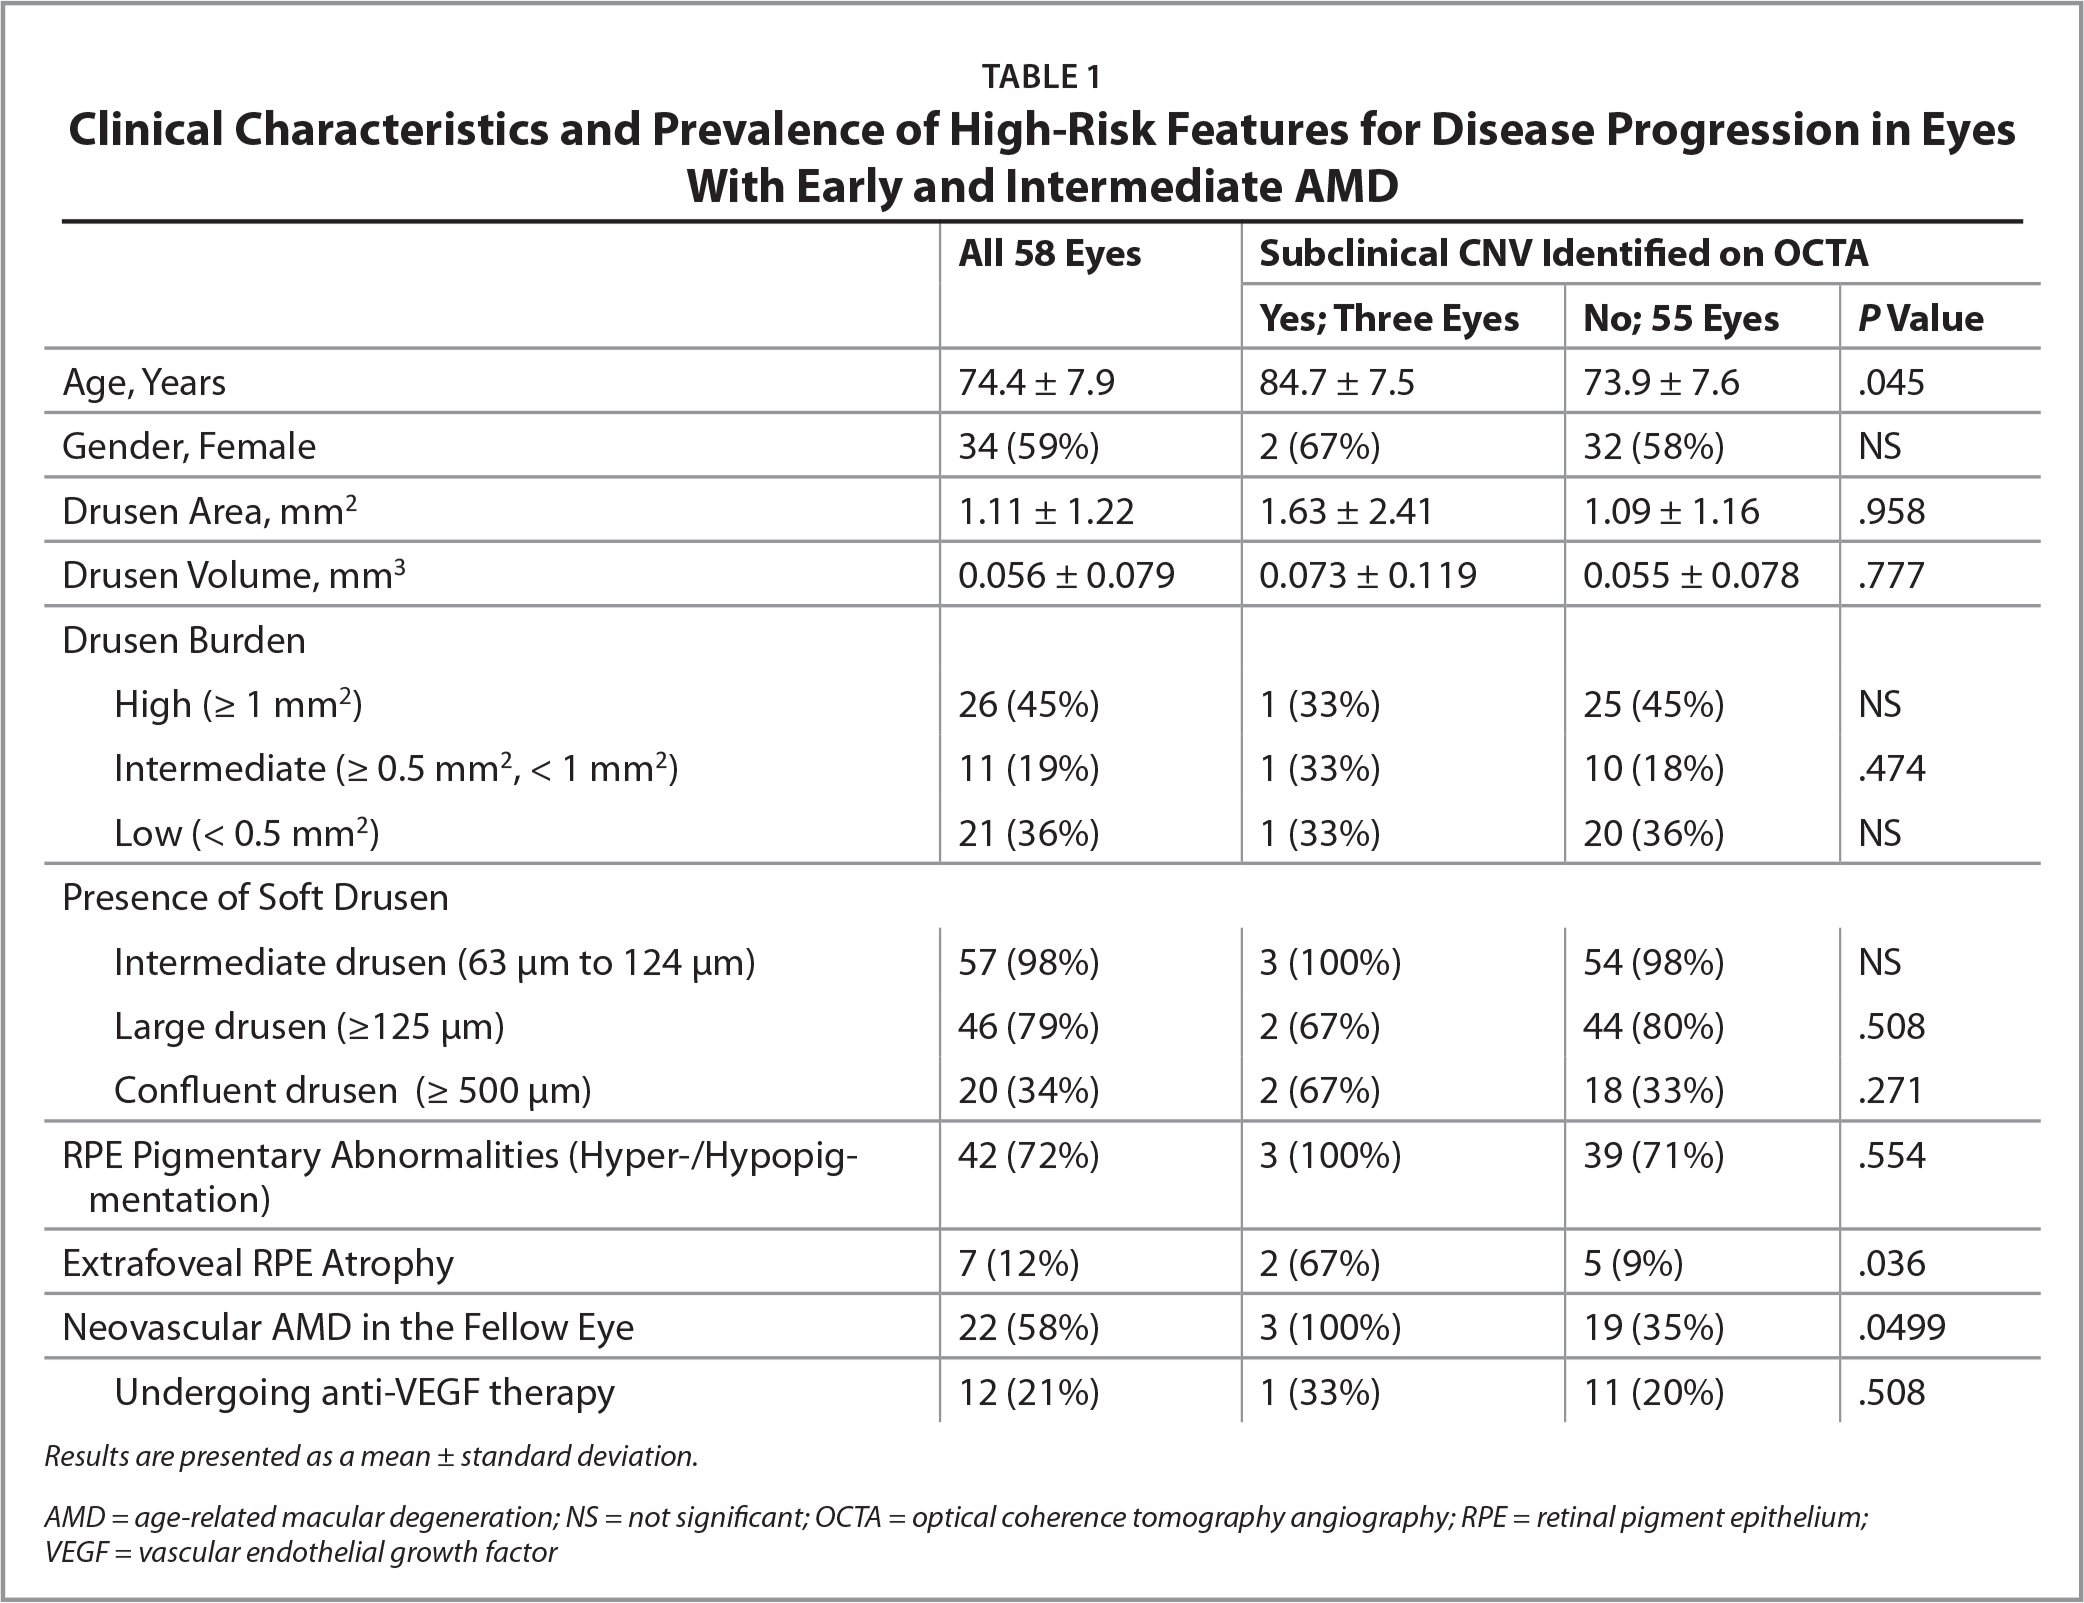 Clinical Characteristics and Prevalence of High-Risk Features for Disease Progression in Eyes With Early and Intermediate AMD